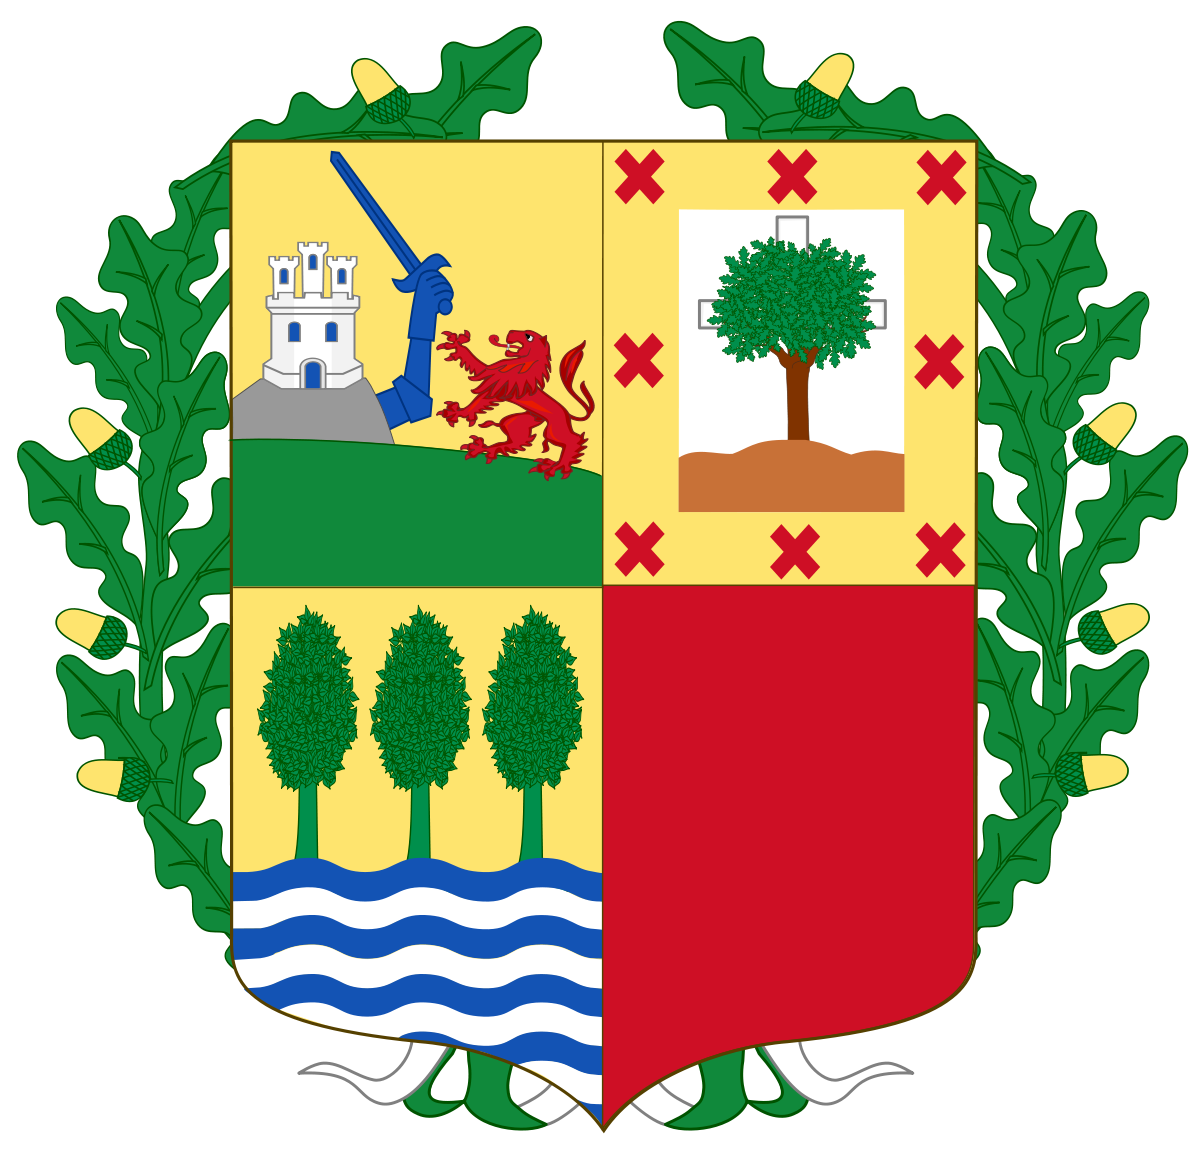 Coat of arms of Basque Country (autonomous community).